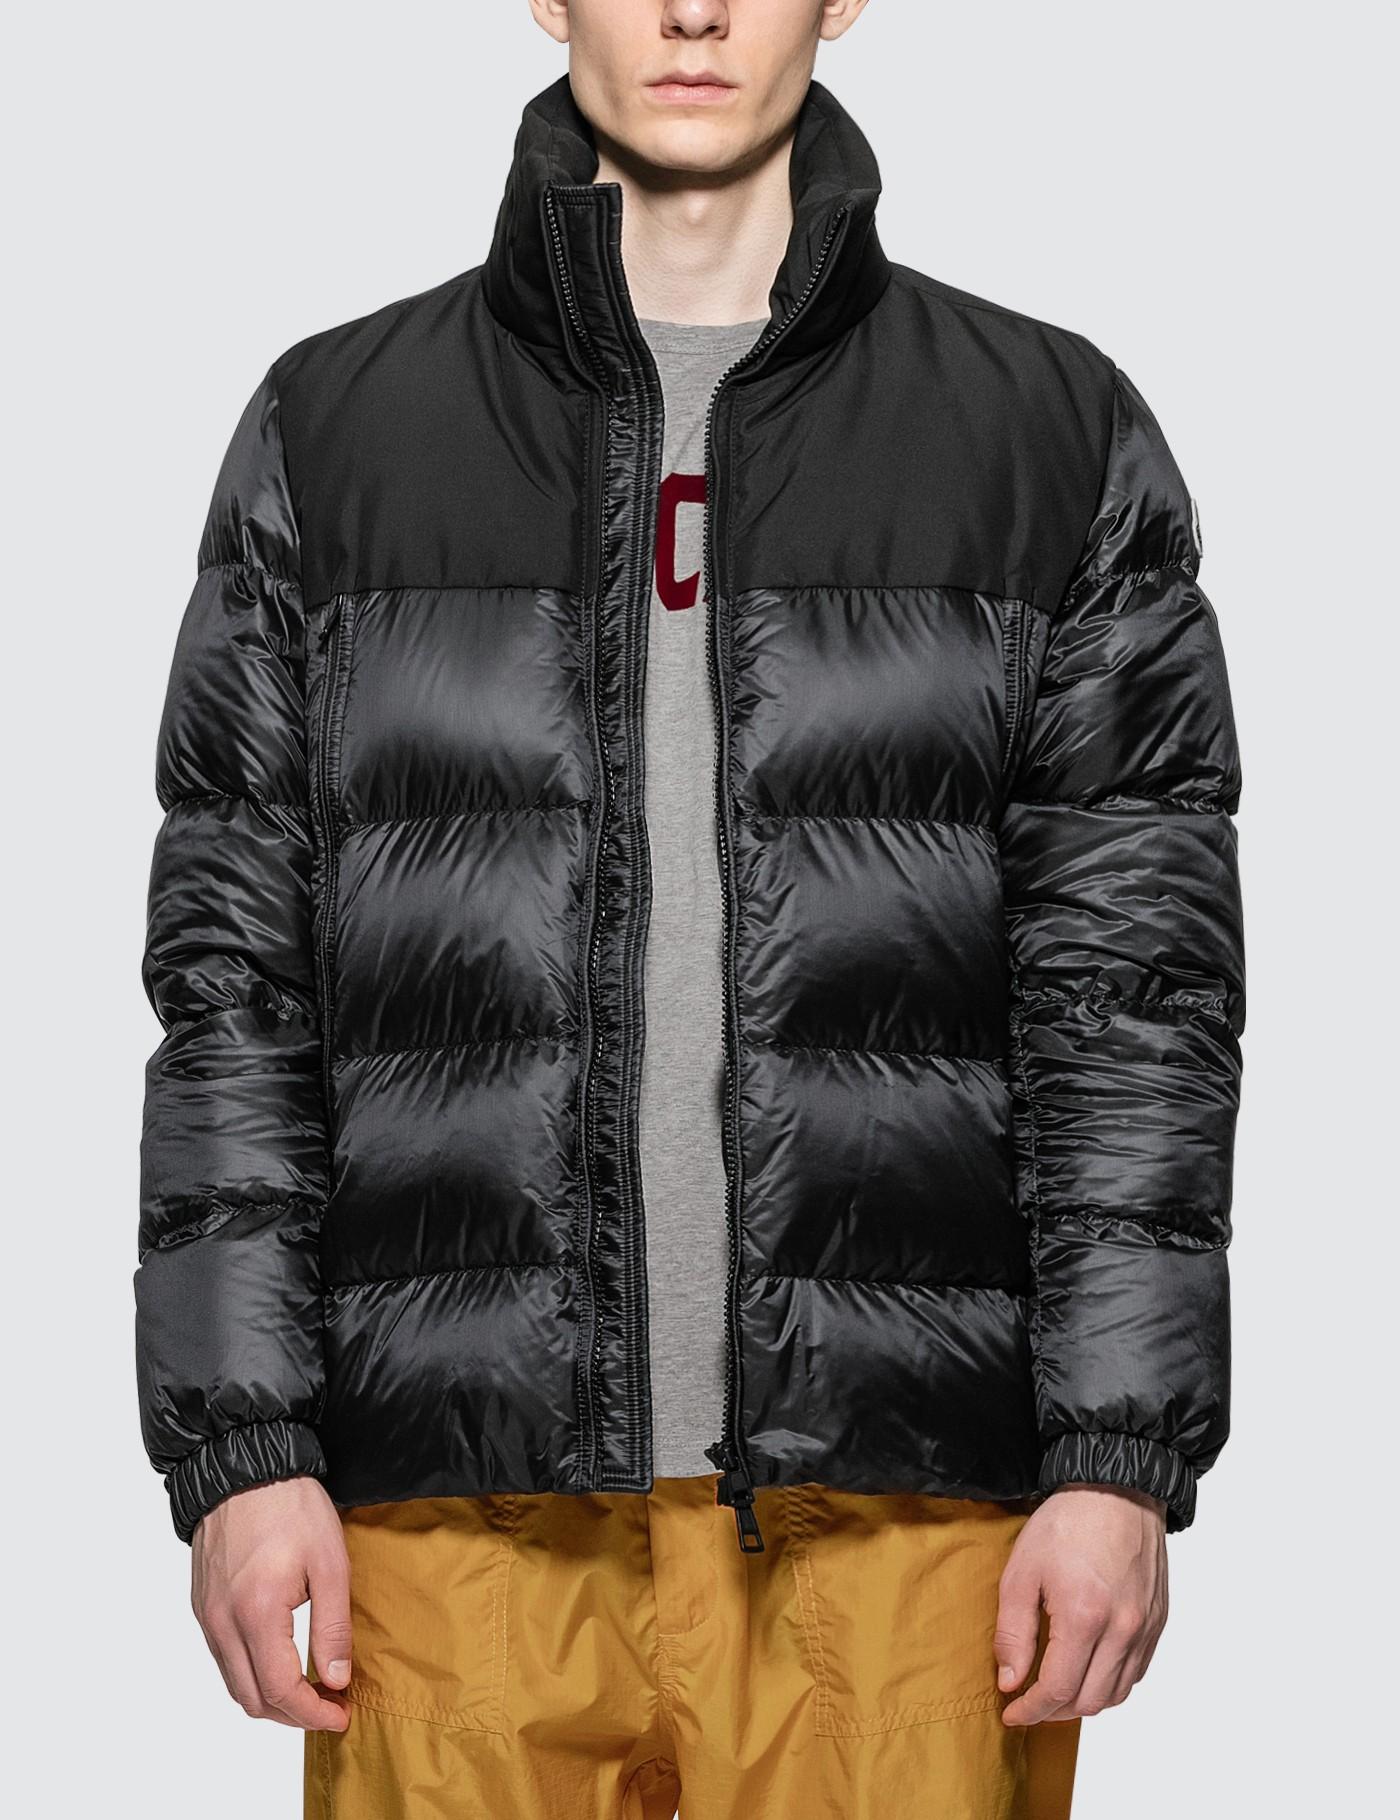 cc9420ace Packable Hooded Down Jacket, Moncler